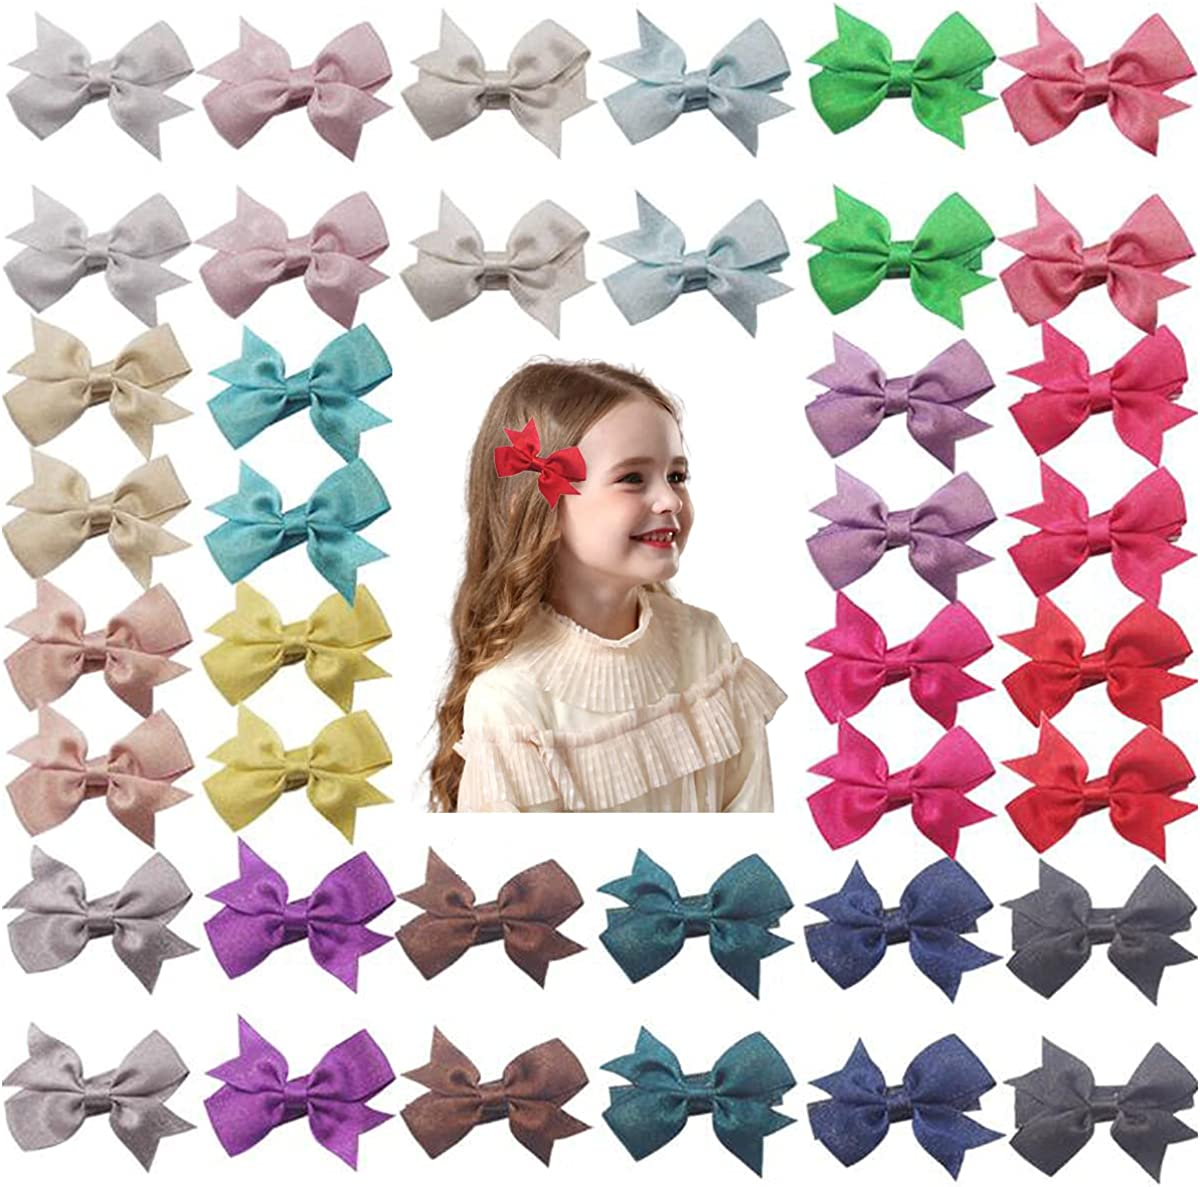 30 Pcs Baby Girl Hair Bow,FZBNSRKO Hair Bow Clips For Babies Hair accessories Gifts for Baby Girls(Random Color,2